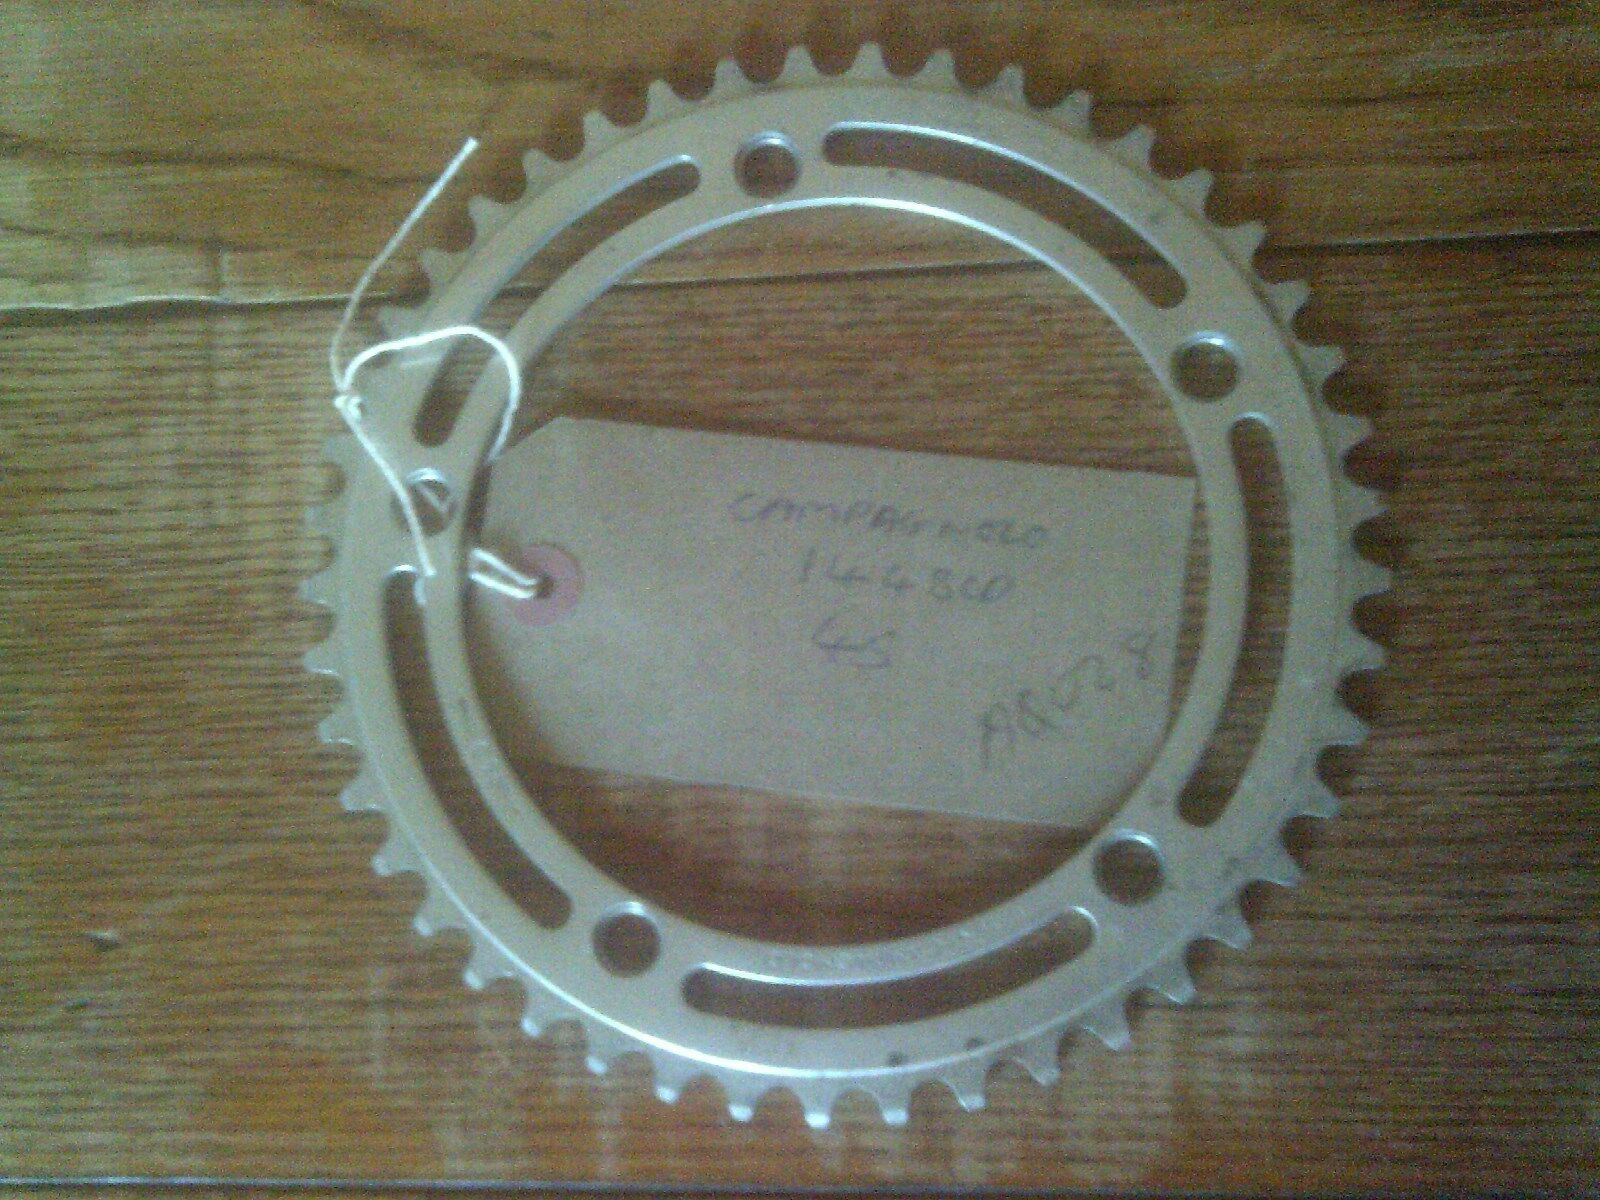 45 TOOTH 144BCD CAMPAGNOLO RECORD CHAINRING